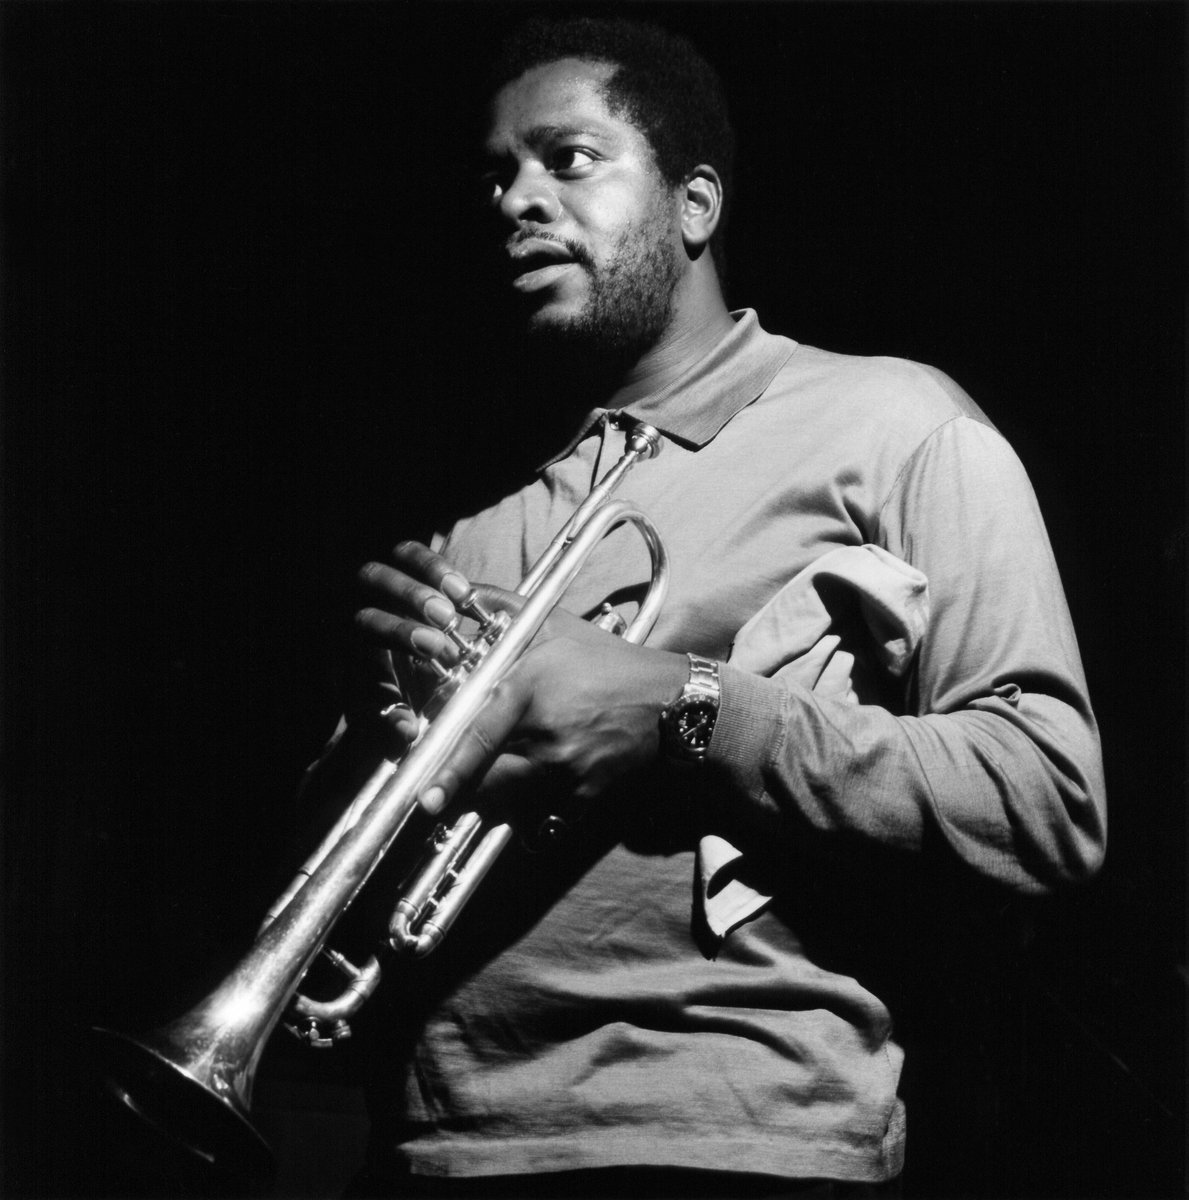 50 years ago #OTD trumpeter #DonaldByrd recorded his underrated album #TheCreeper, which wasn&#39;t released until 1981:  https:// bluenote.lnk.to/Byrd-TheCreeper  &nbsp;  <br>http://pic.twitter.com/tOHECCMixo